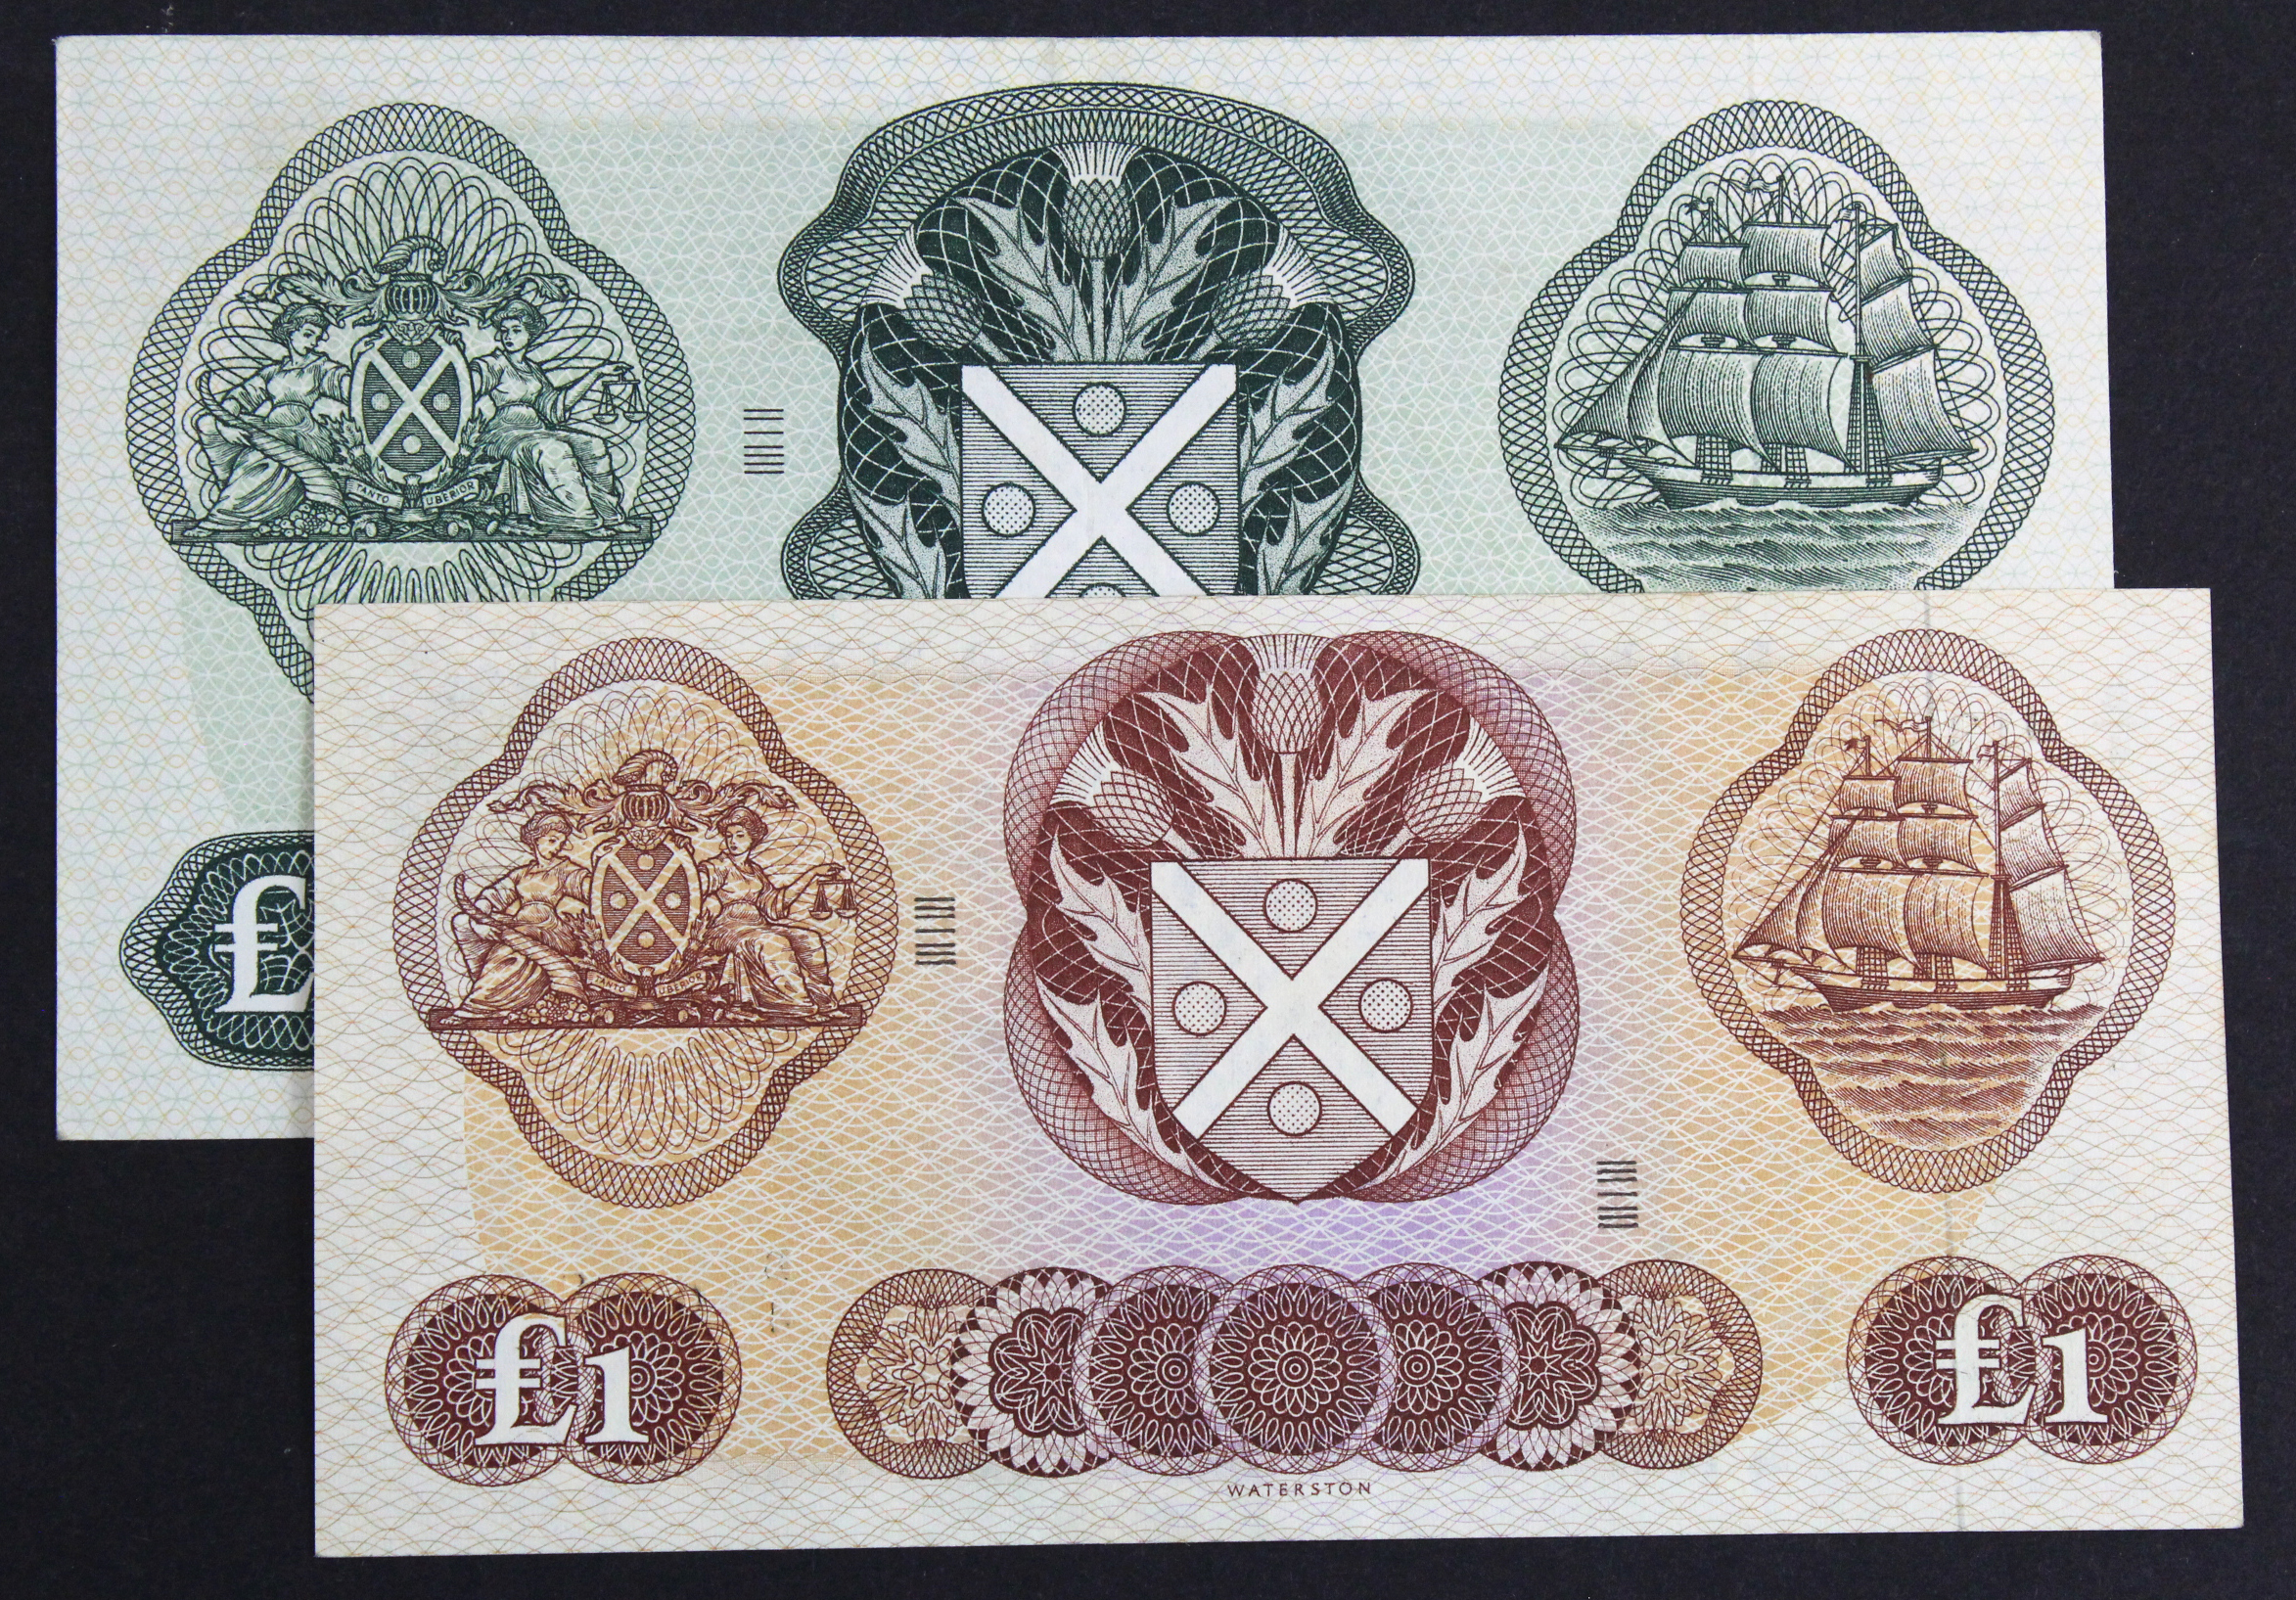 Scotland, Bank of Scotland (2), 5 Pounds dated 8th December 1969, signed Polwarth & Letham, serial C - Image 2 of 2